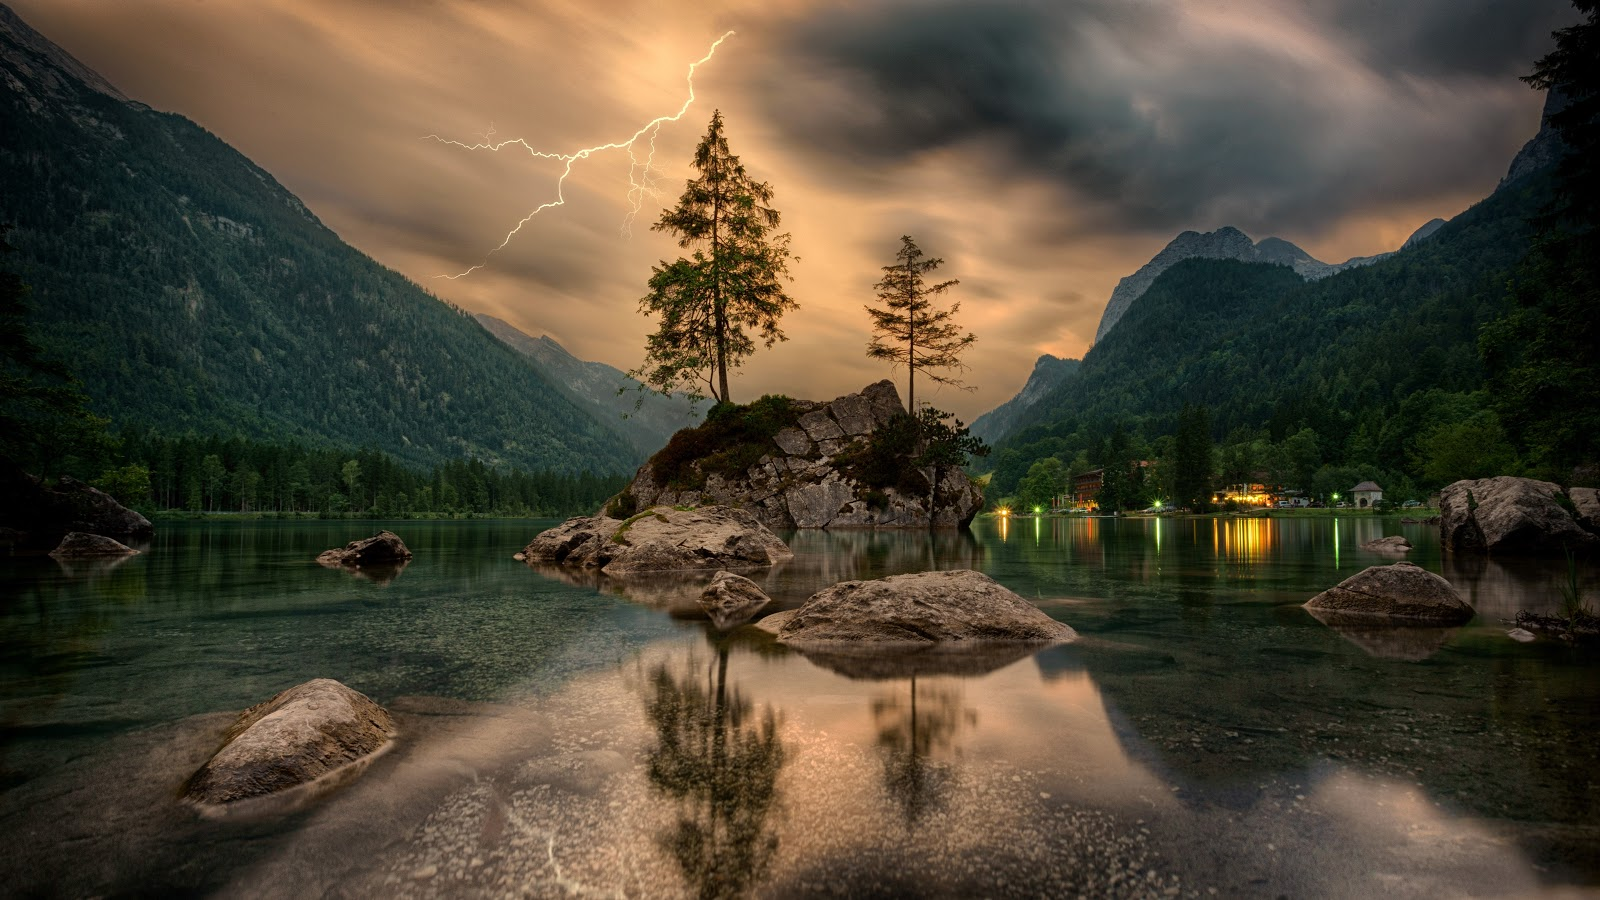 lightening-scenic-nature-nature-images